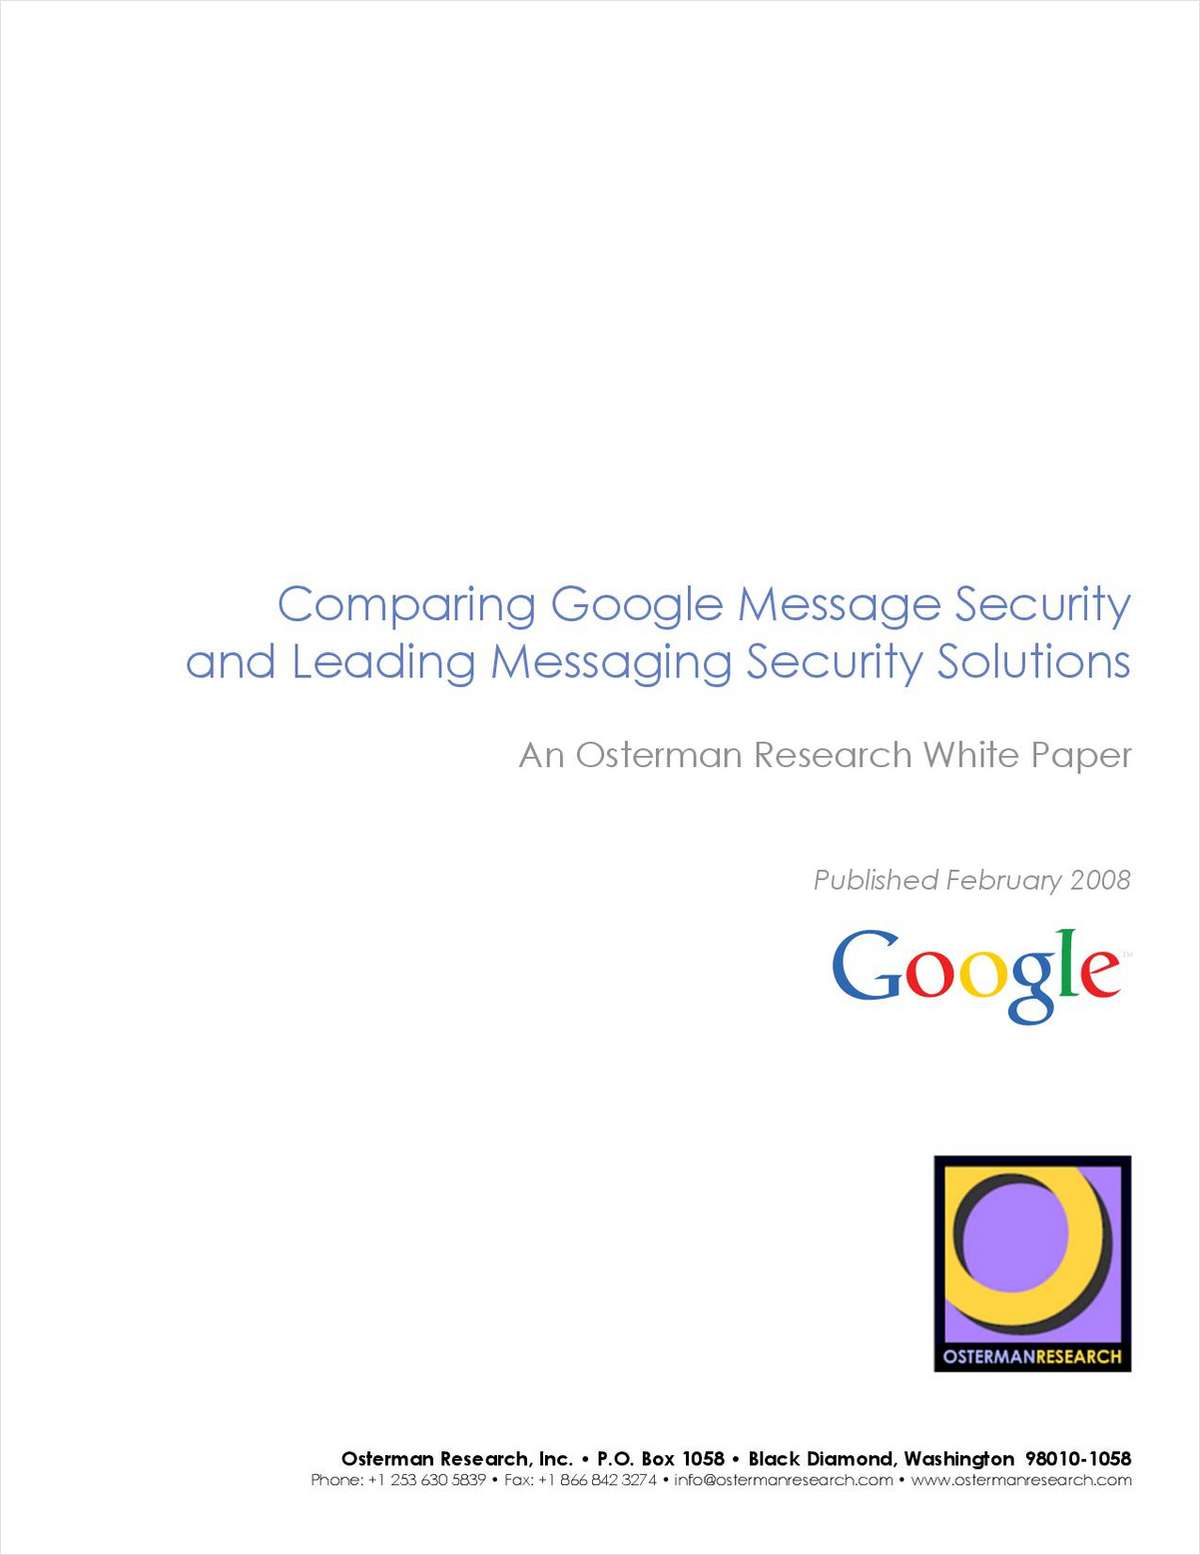 Google vs The World: The Battle of the Message Security Vendors